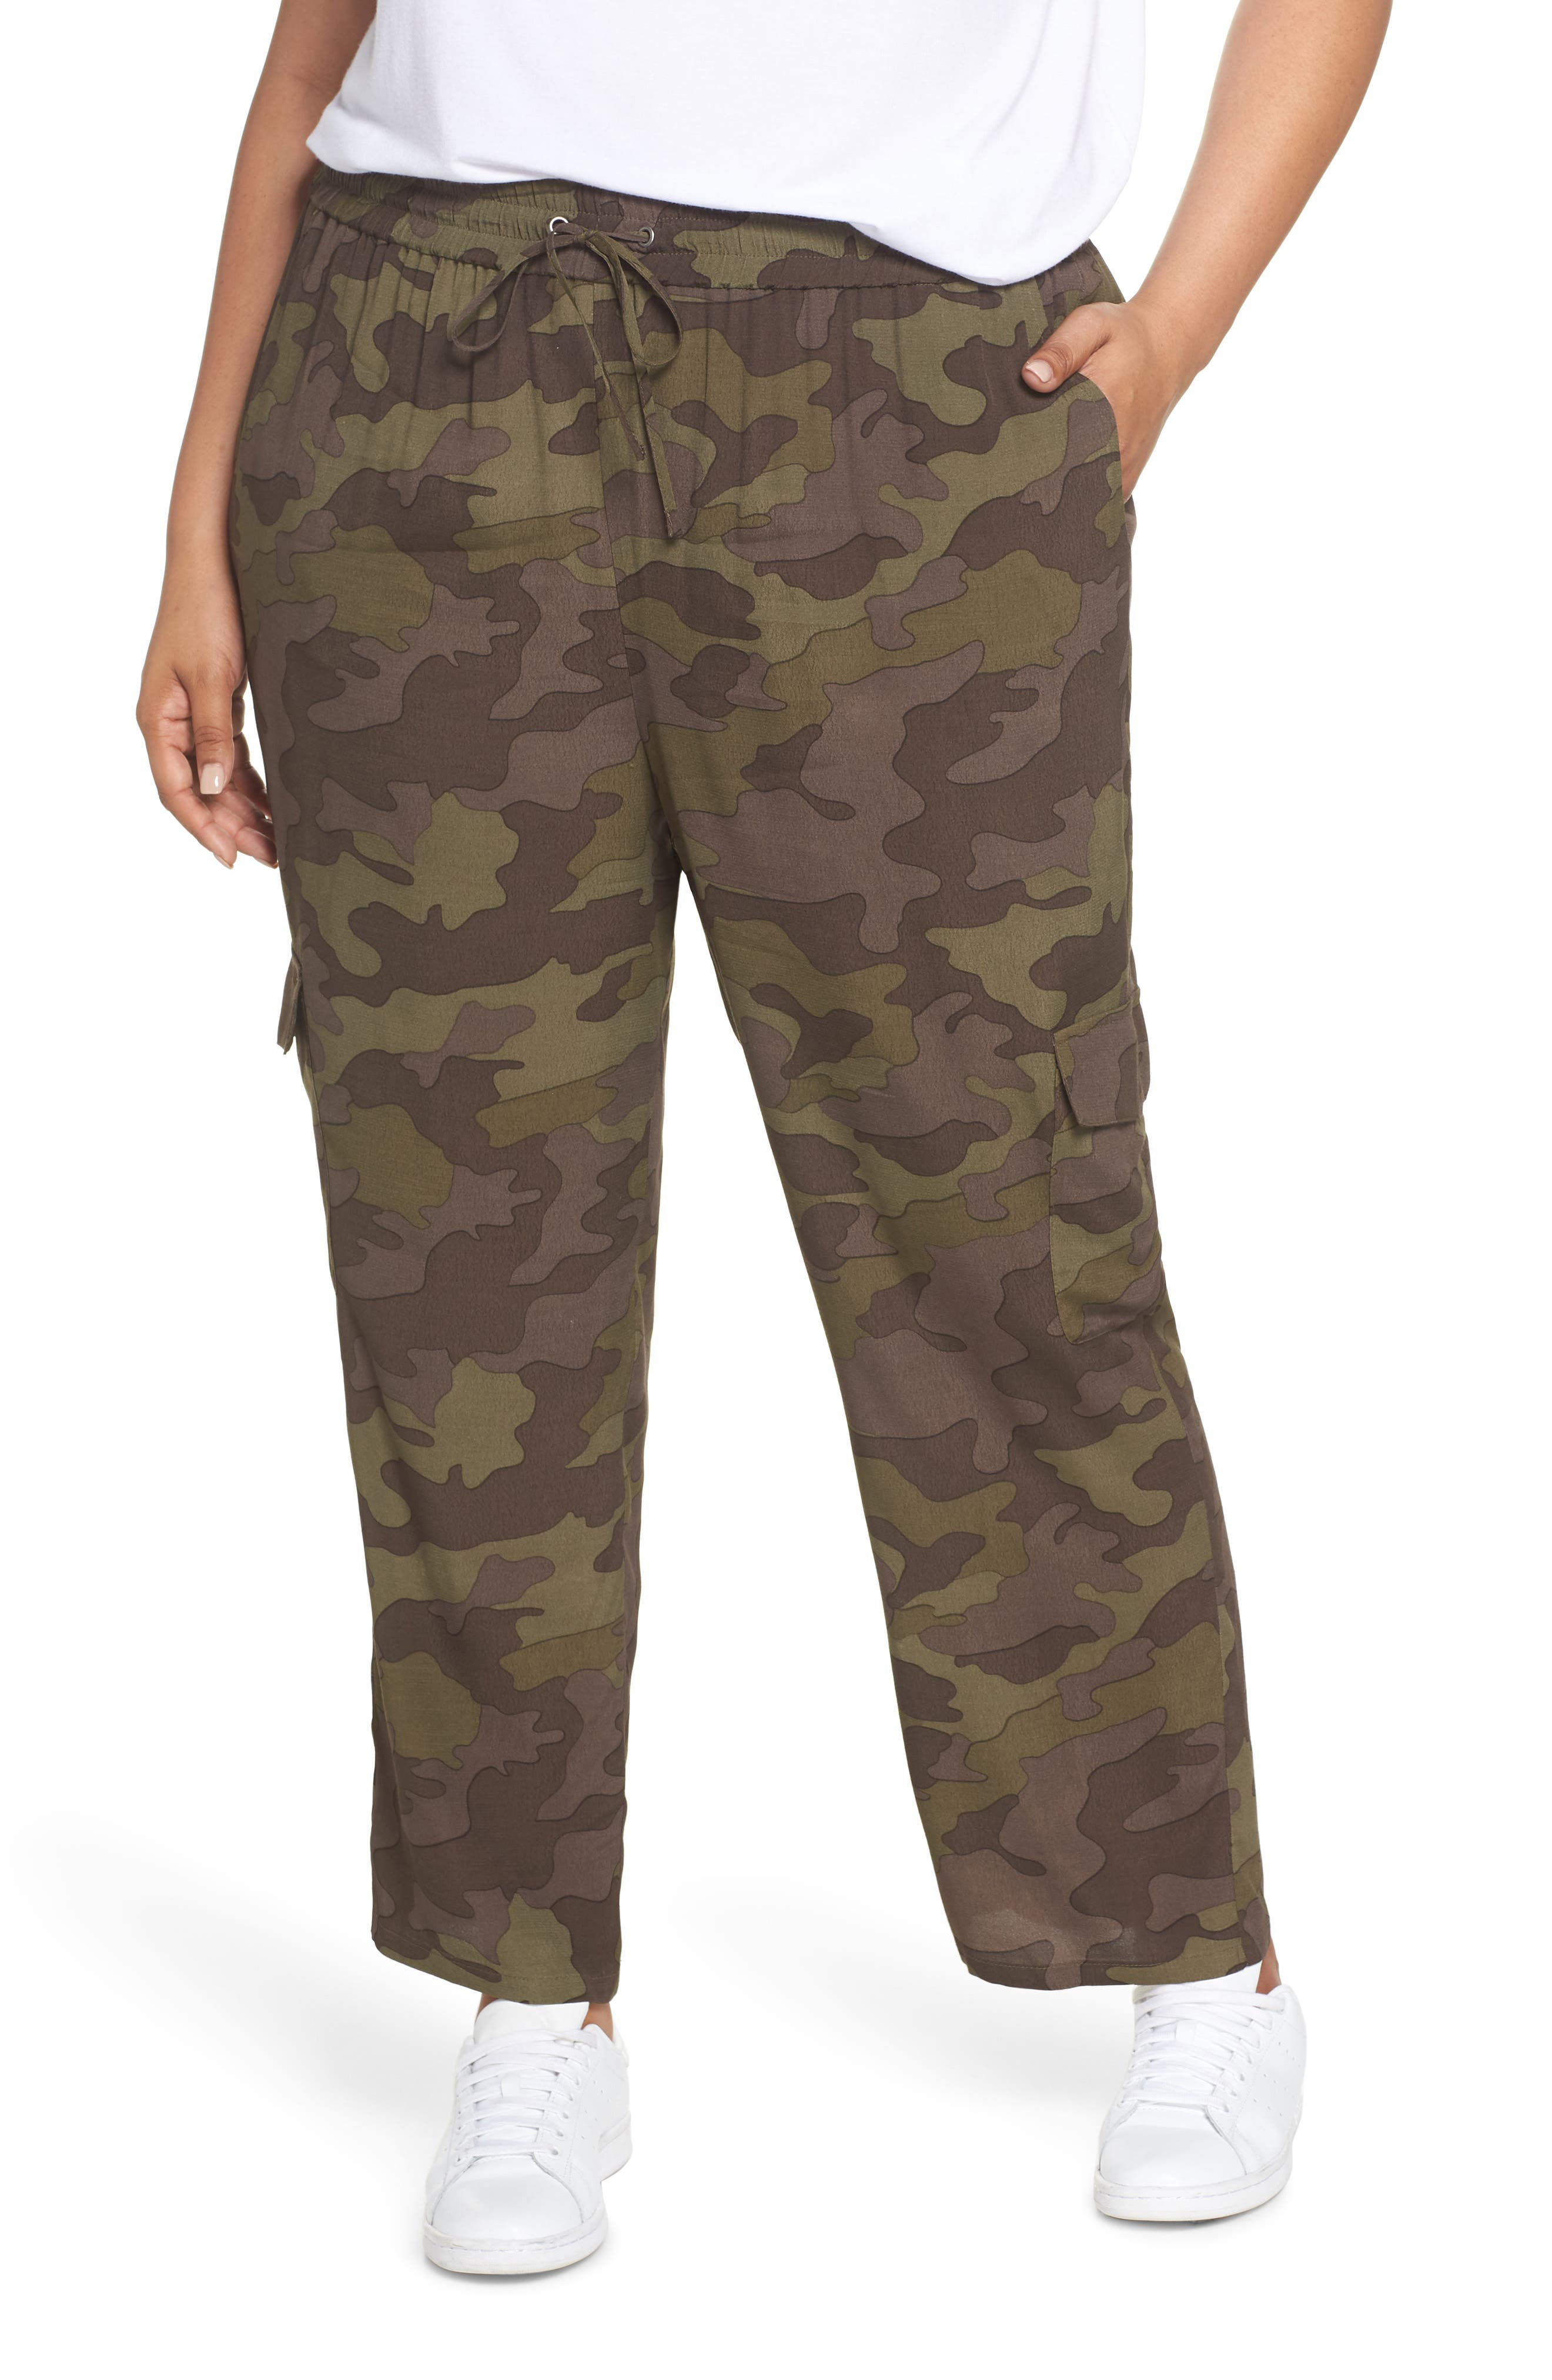 High Rise Camouflage Cargo Pants,                             Alternate thumbnail 2, color,                             210